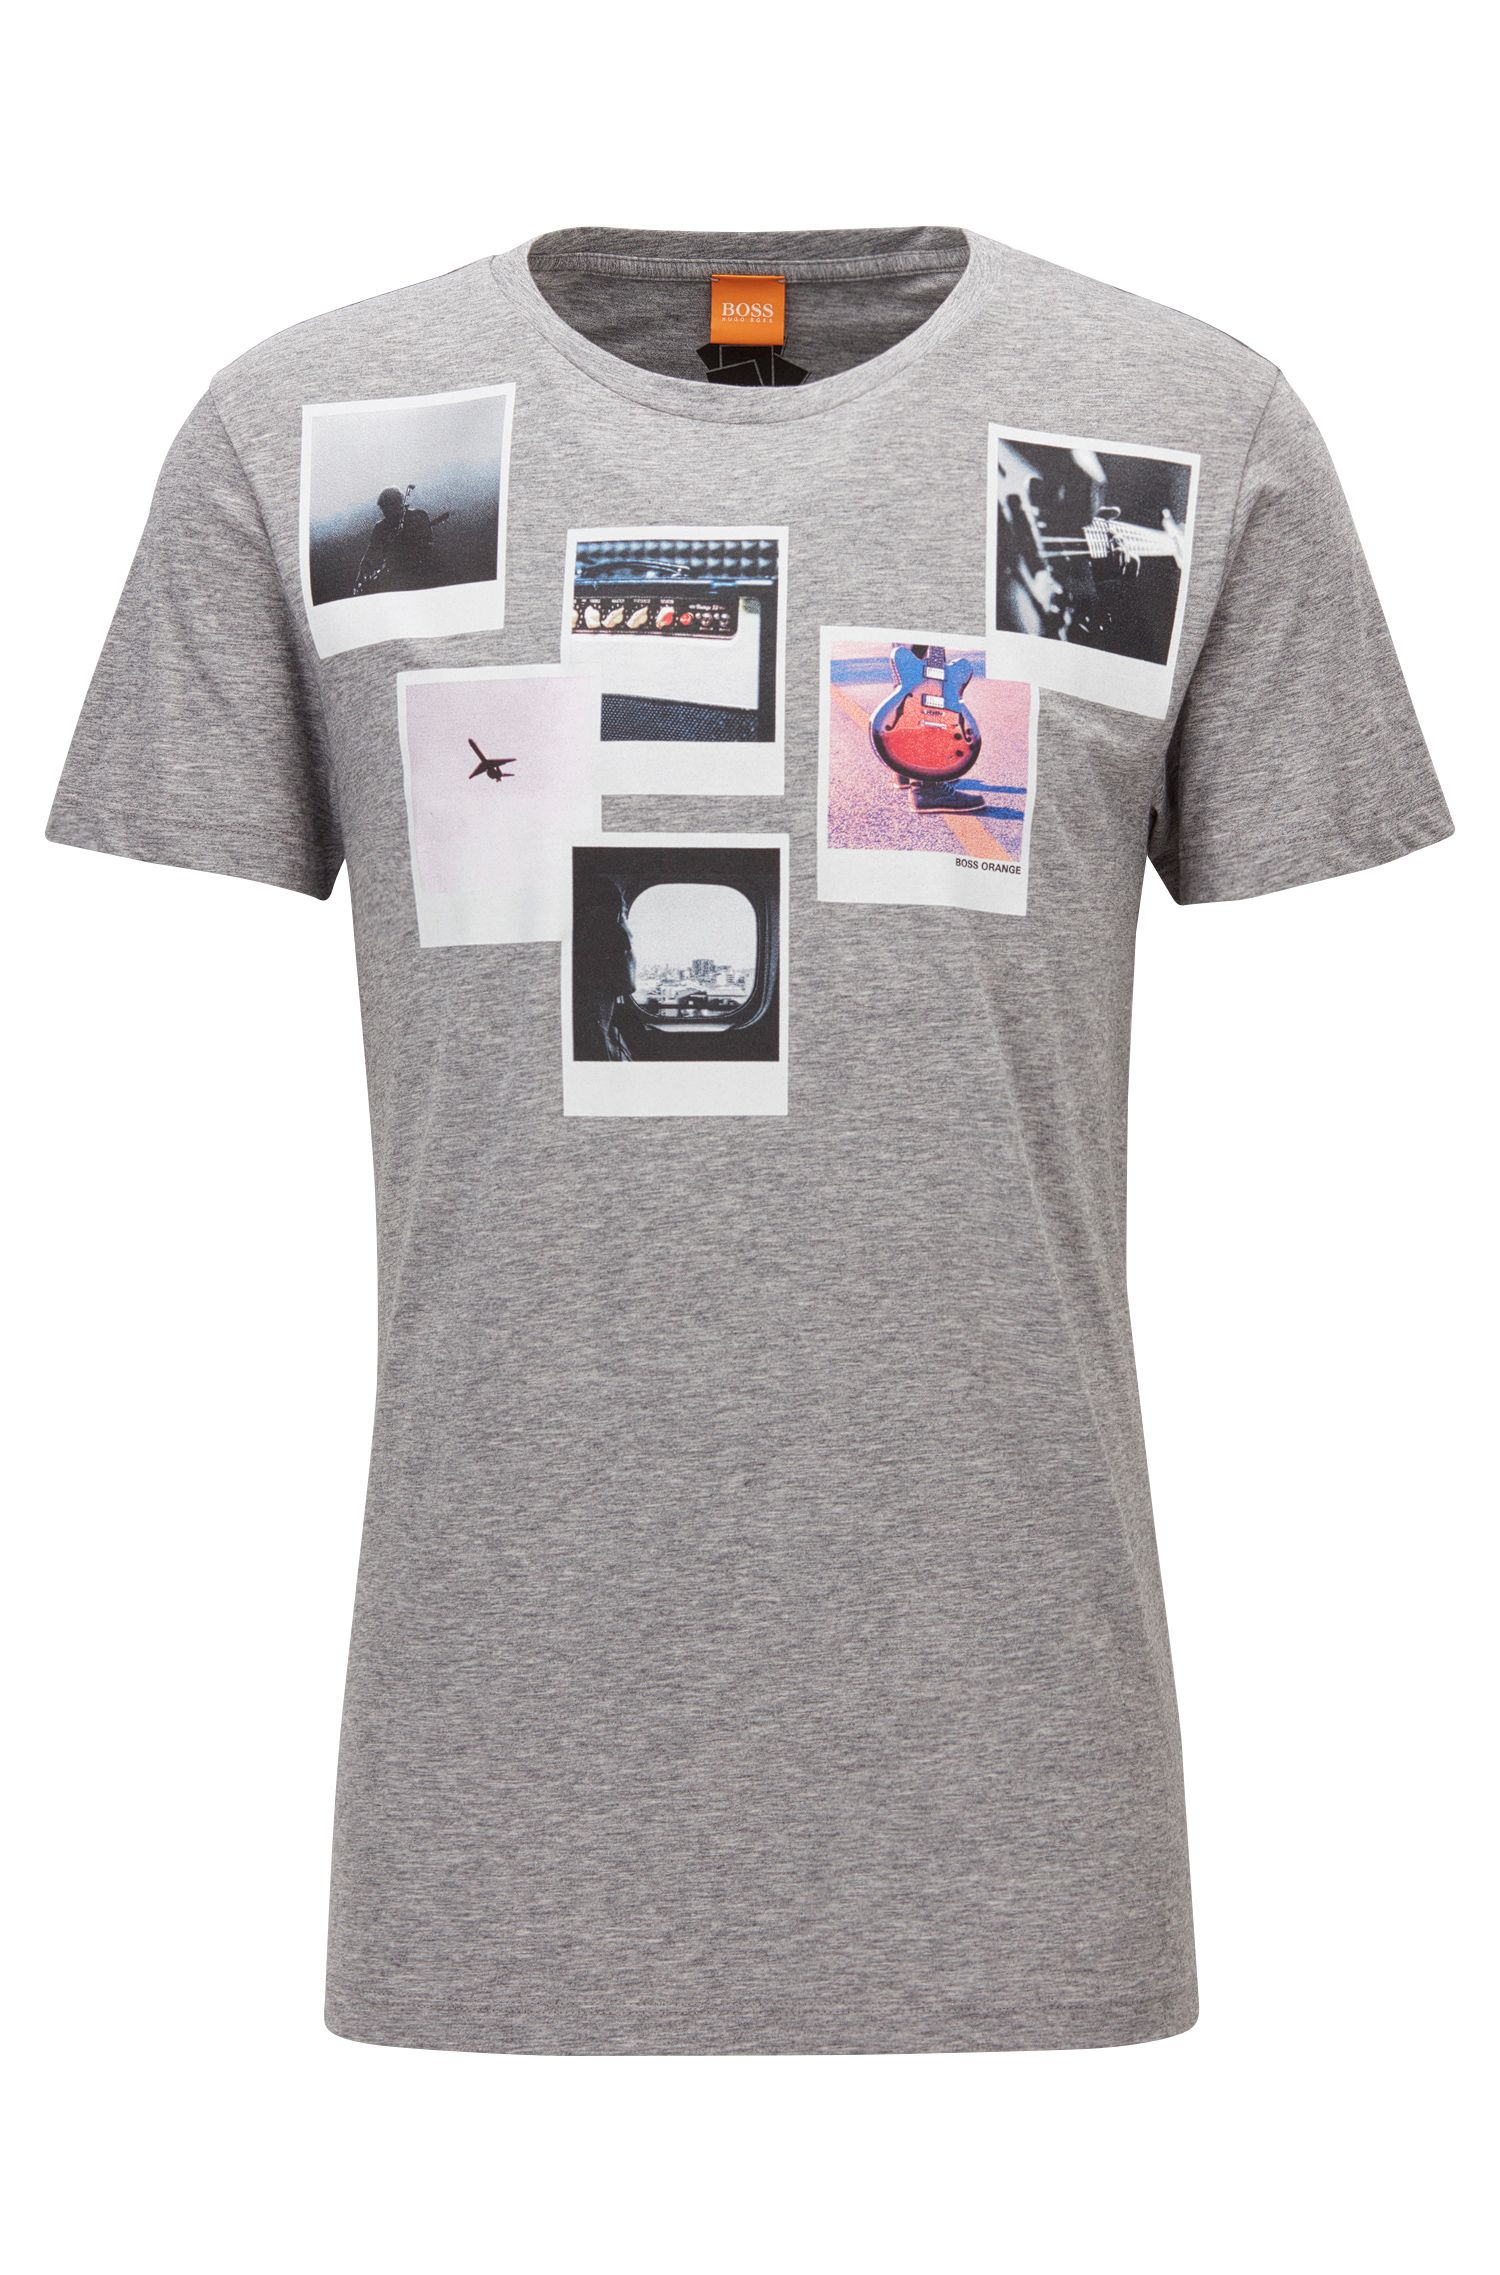 Pima Cotton Graphic T-Shirt | Taxable